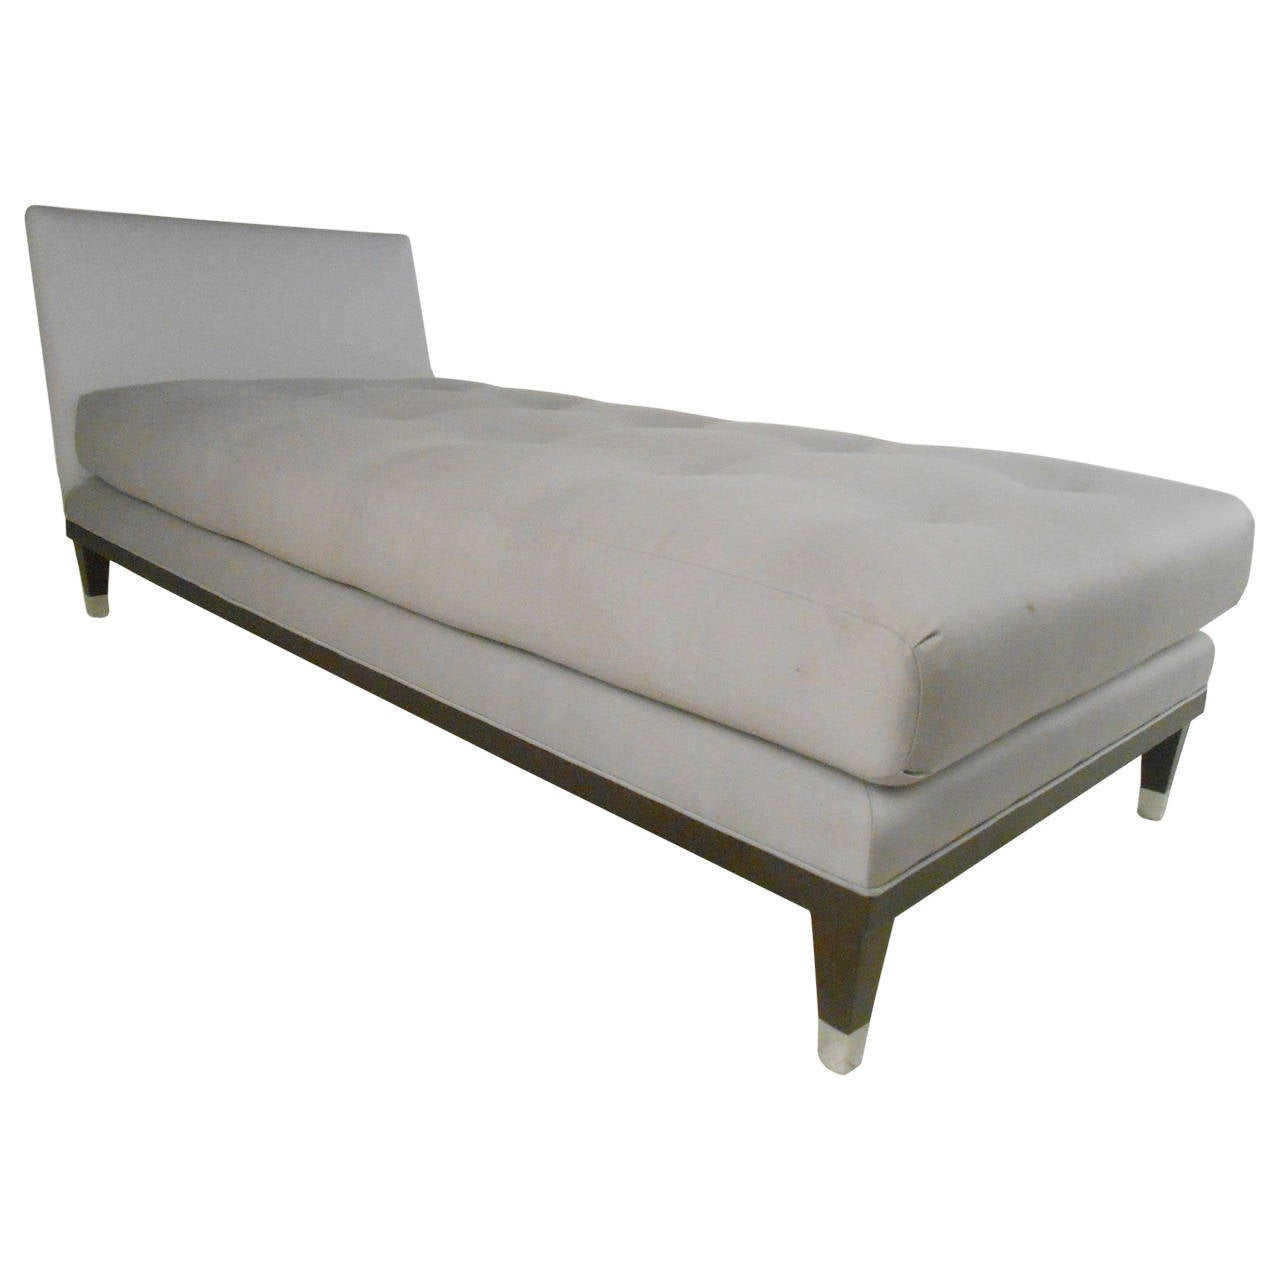 Modern style chaise lounge at 1stdibs for Chaise lounge contemporary